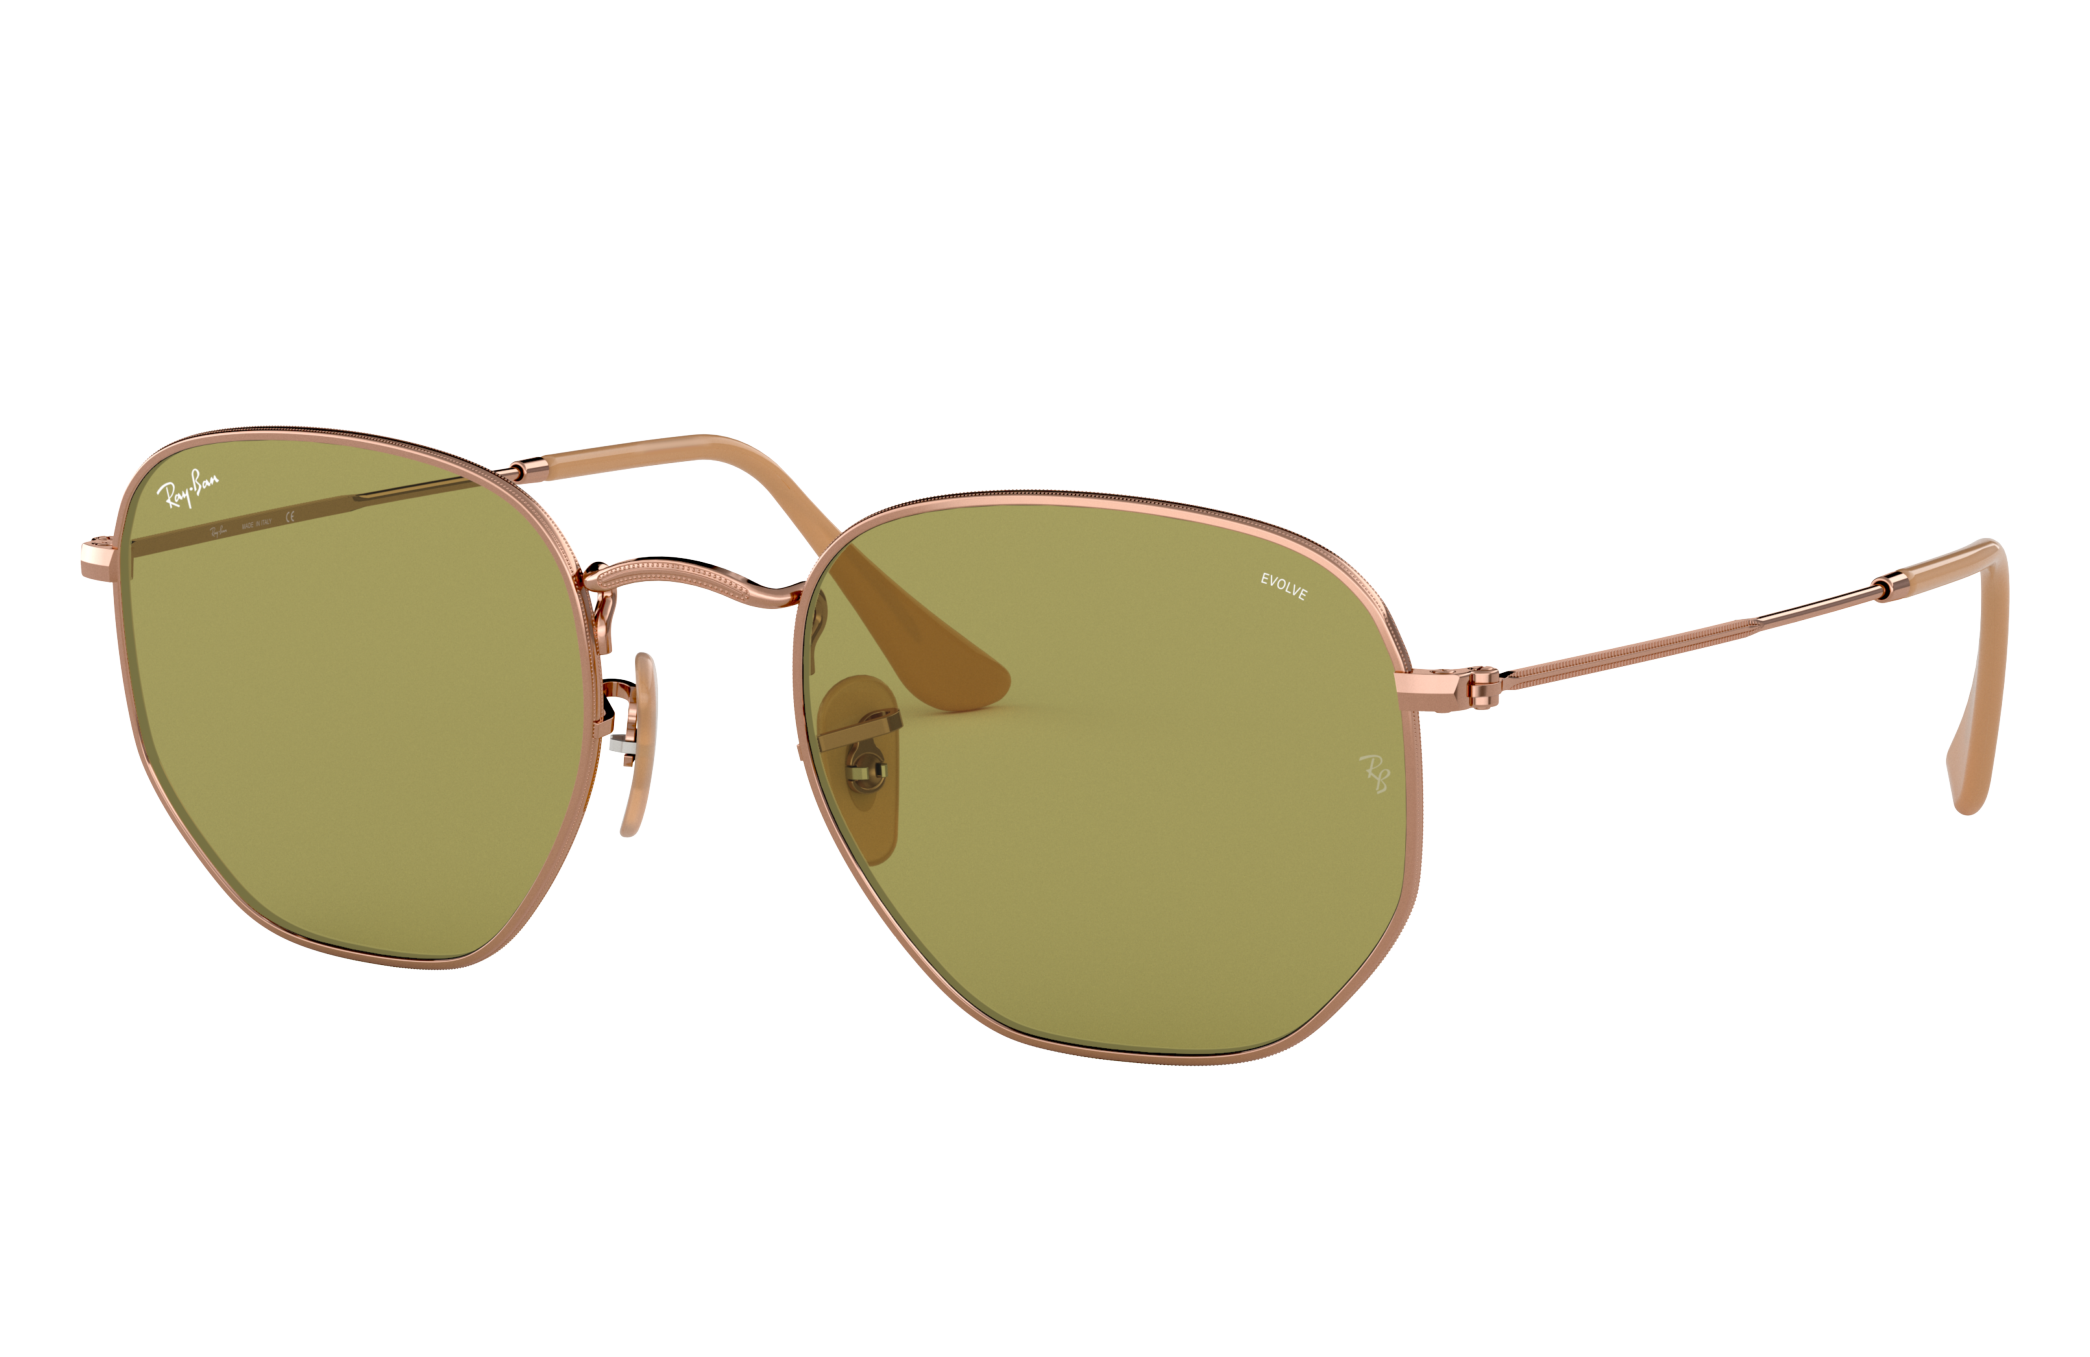 Ray-Ban Hexagonal Washed Evolve Bronze-Copper, Green Lenses - RB3548N